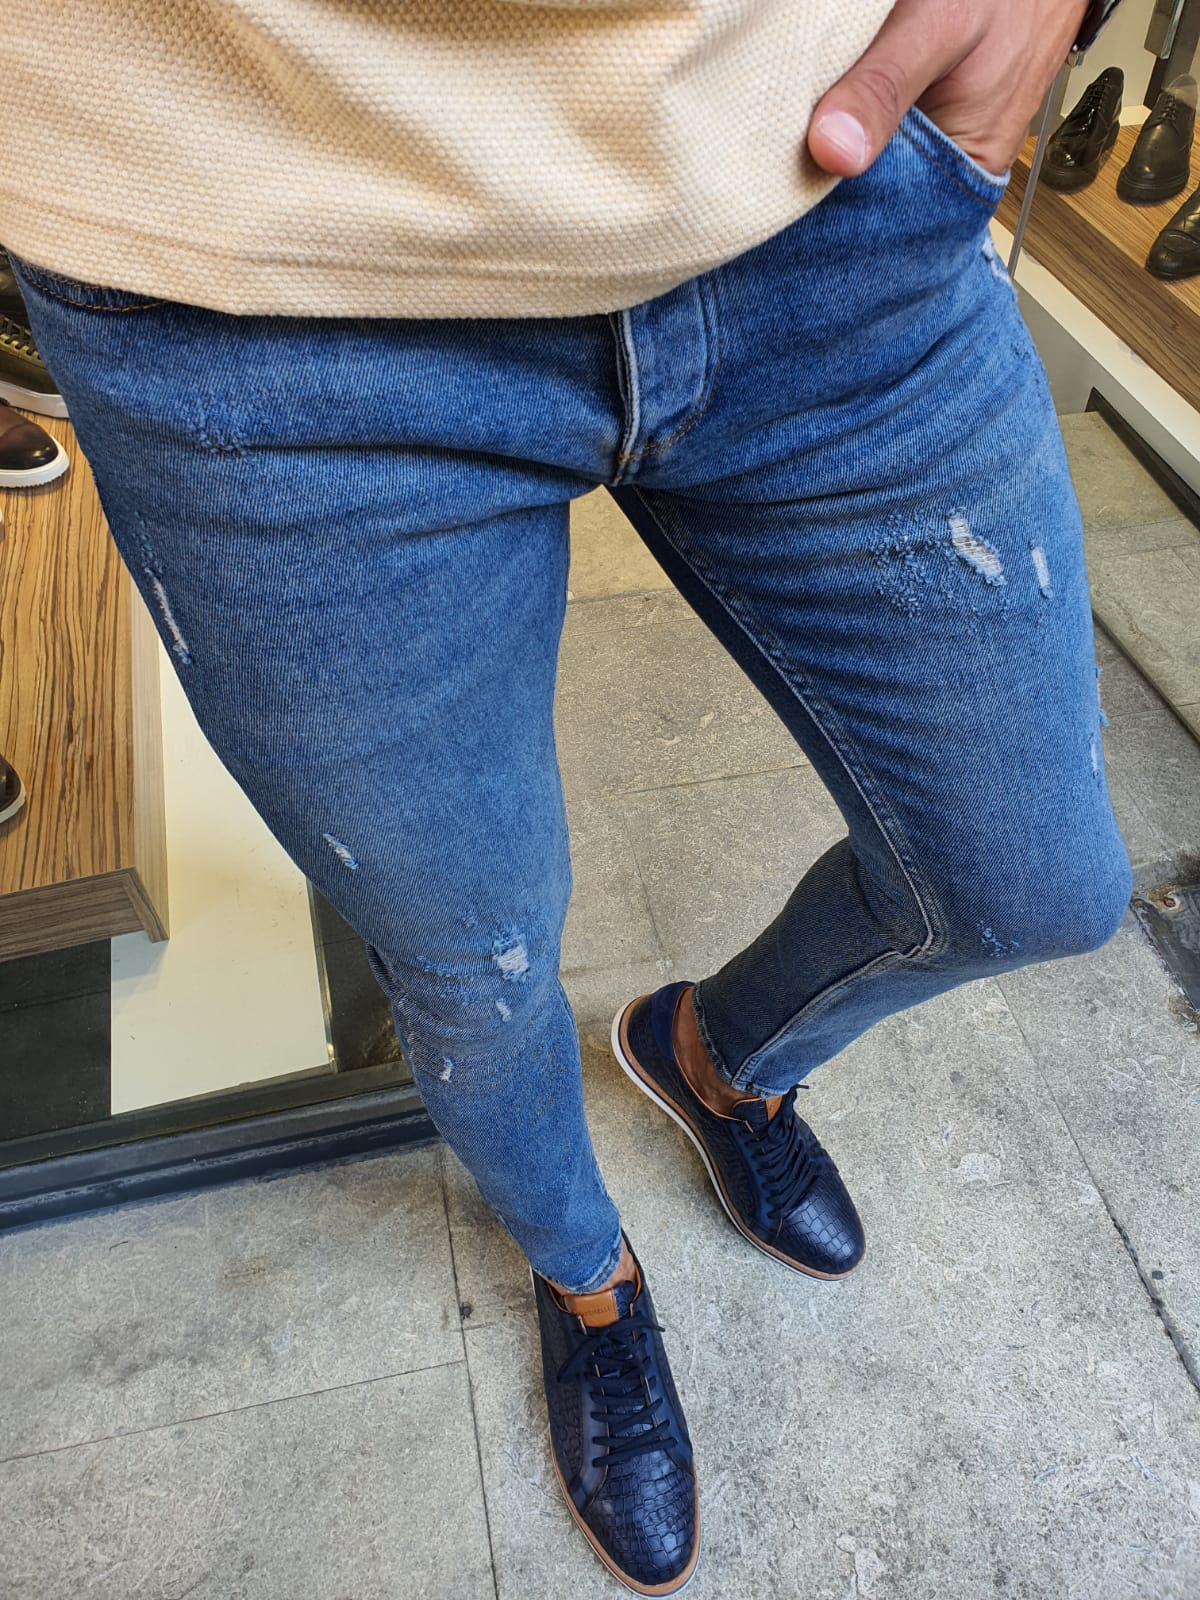 Aysoti Sparks Blue Slim Fit Handmade Ripped Jeans